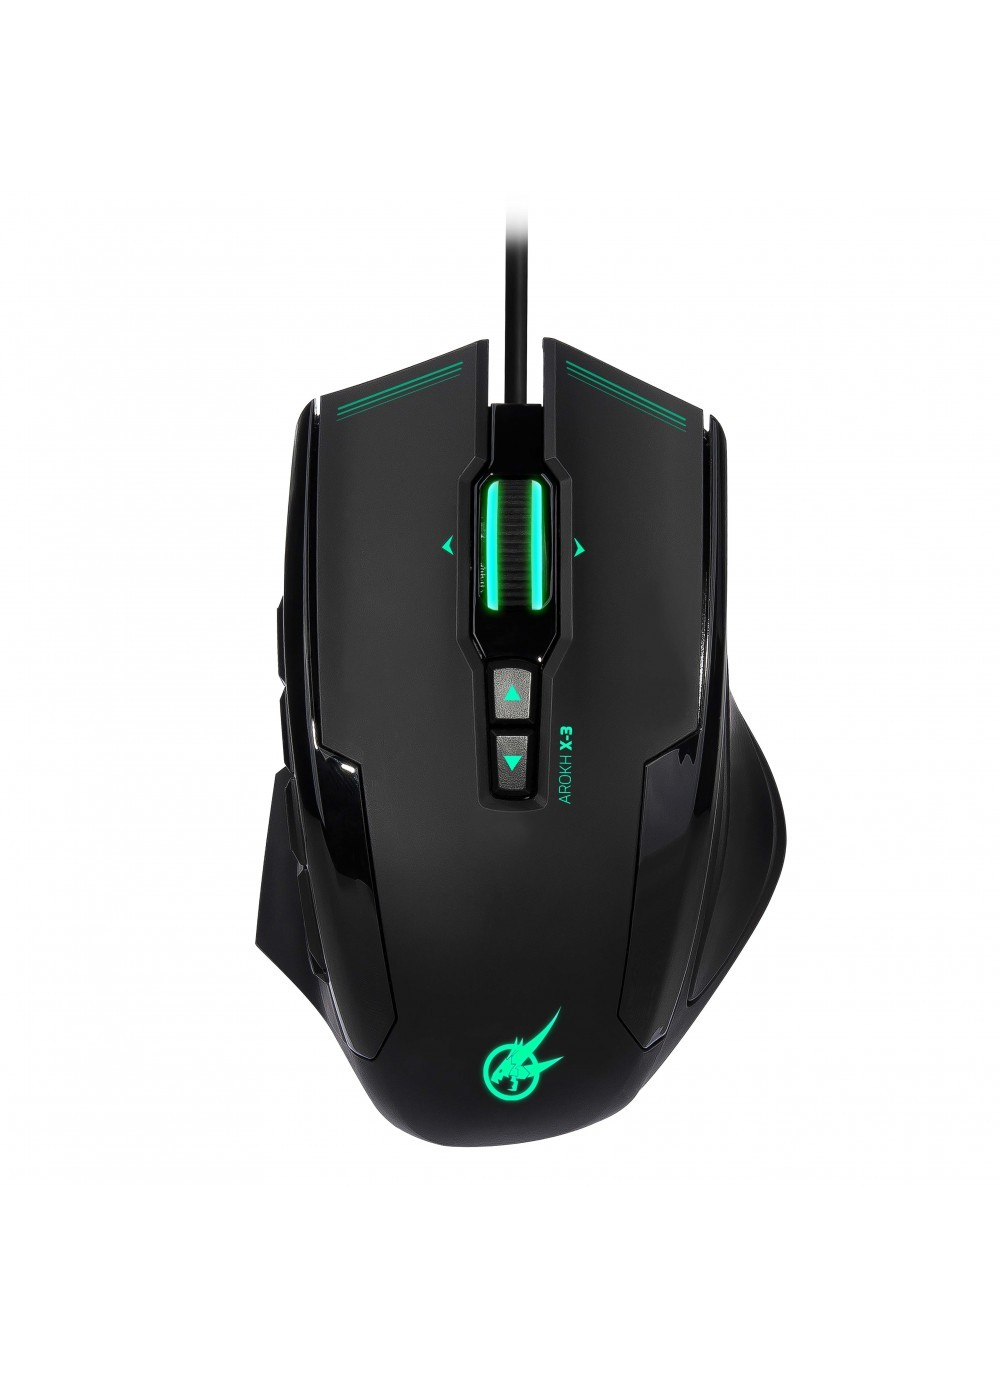 GAMING MOUSE AROKH X-3 - 12 BUTTONS 8200 DPI - GN